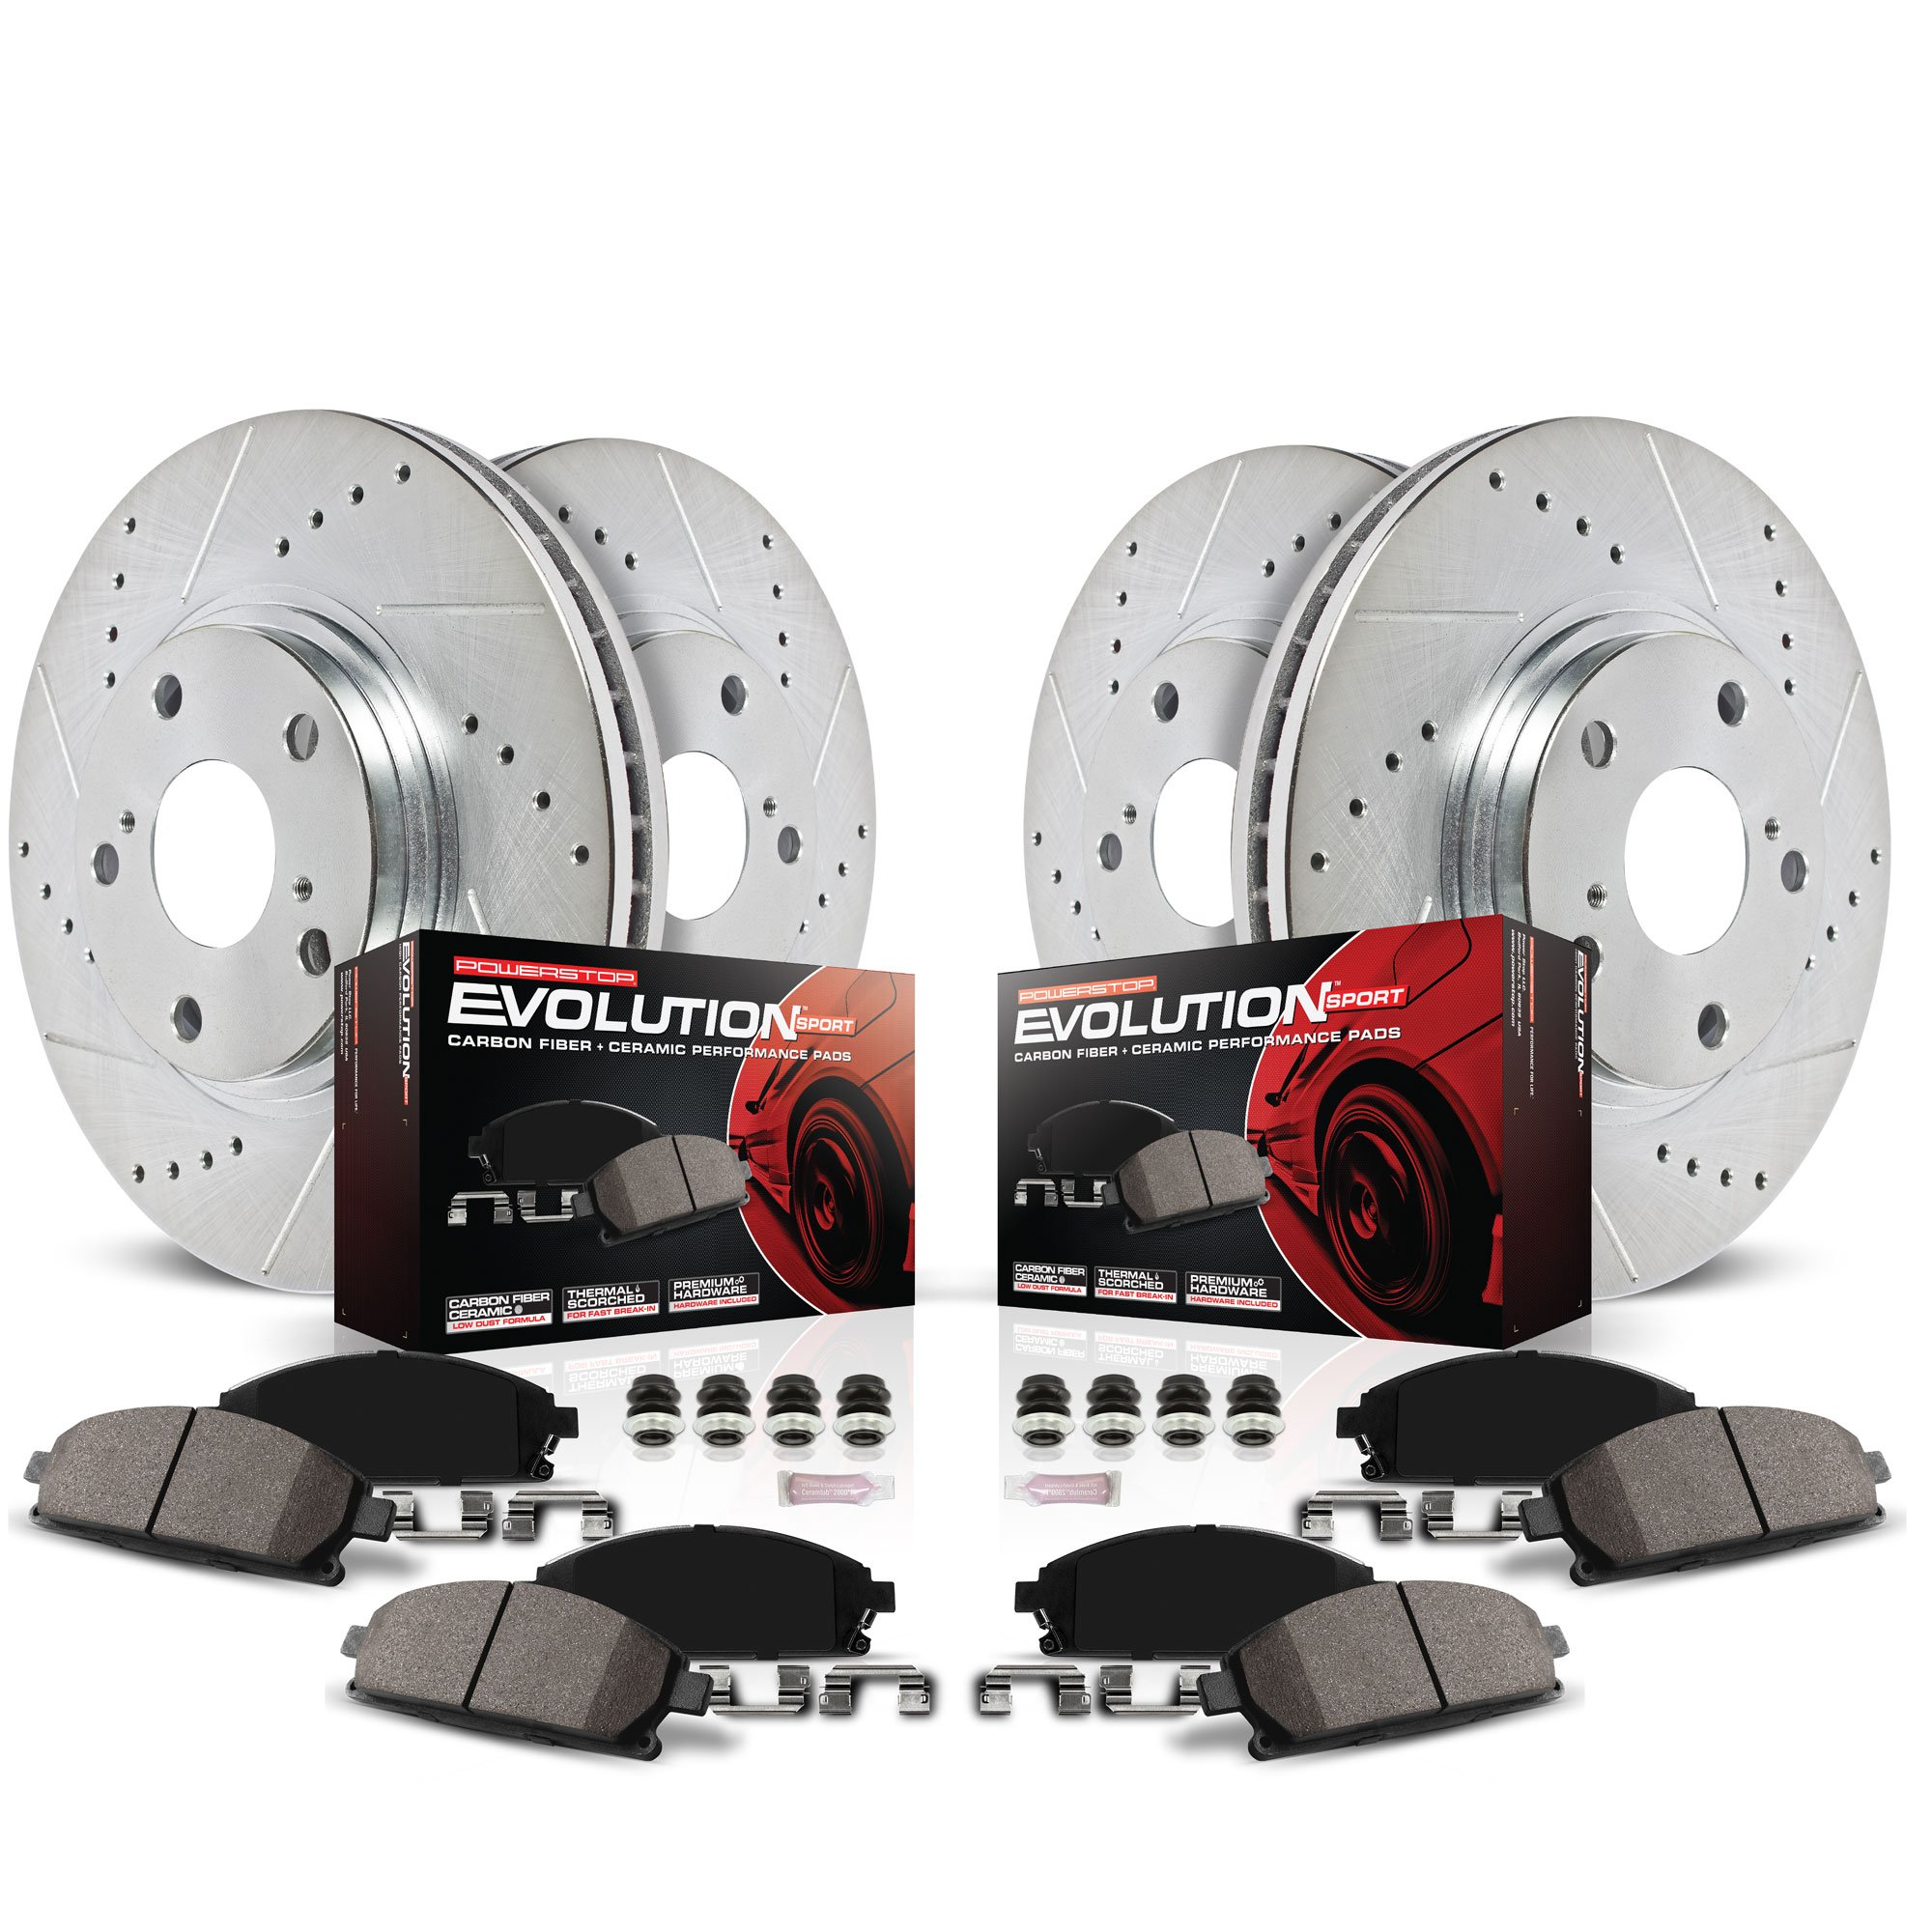 Power Stop K2798 Front and Rear Z23 Evolution Brake Kit with Drilled/Slotted Rotors and Ceramic Brake Pads by Power Stop